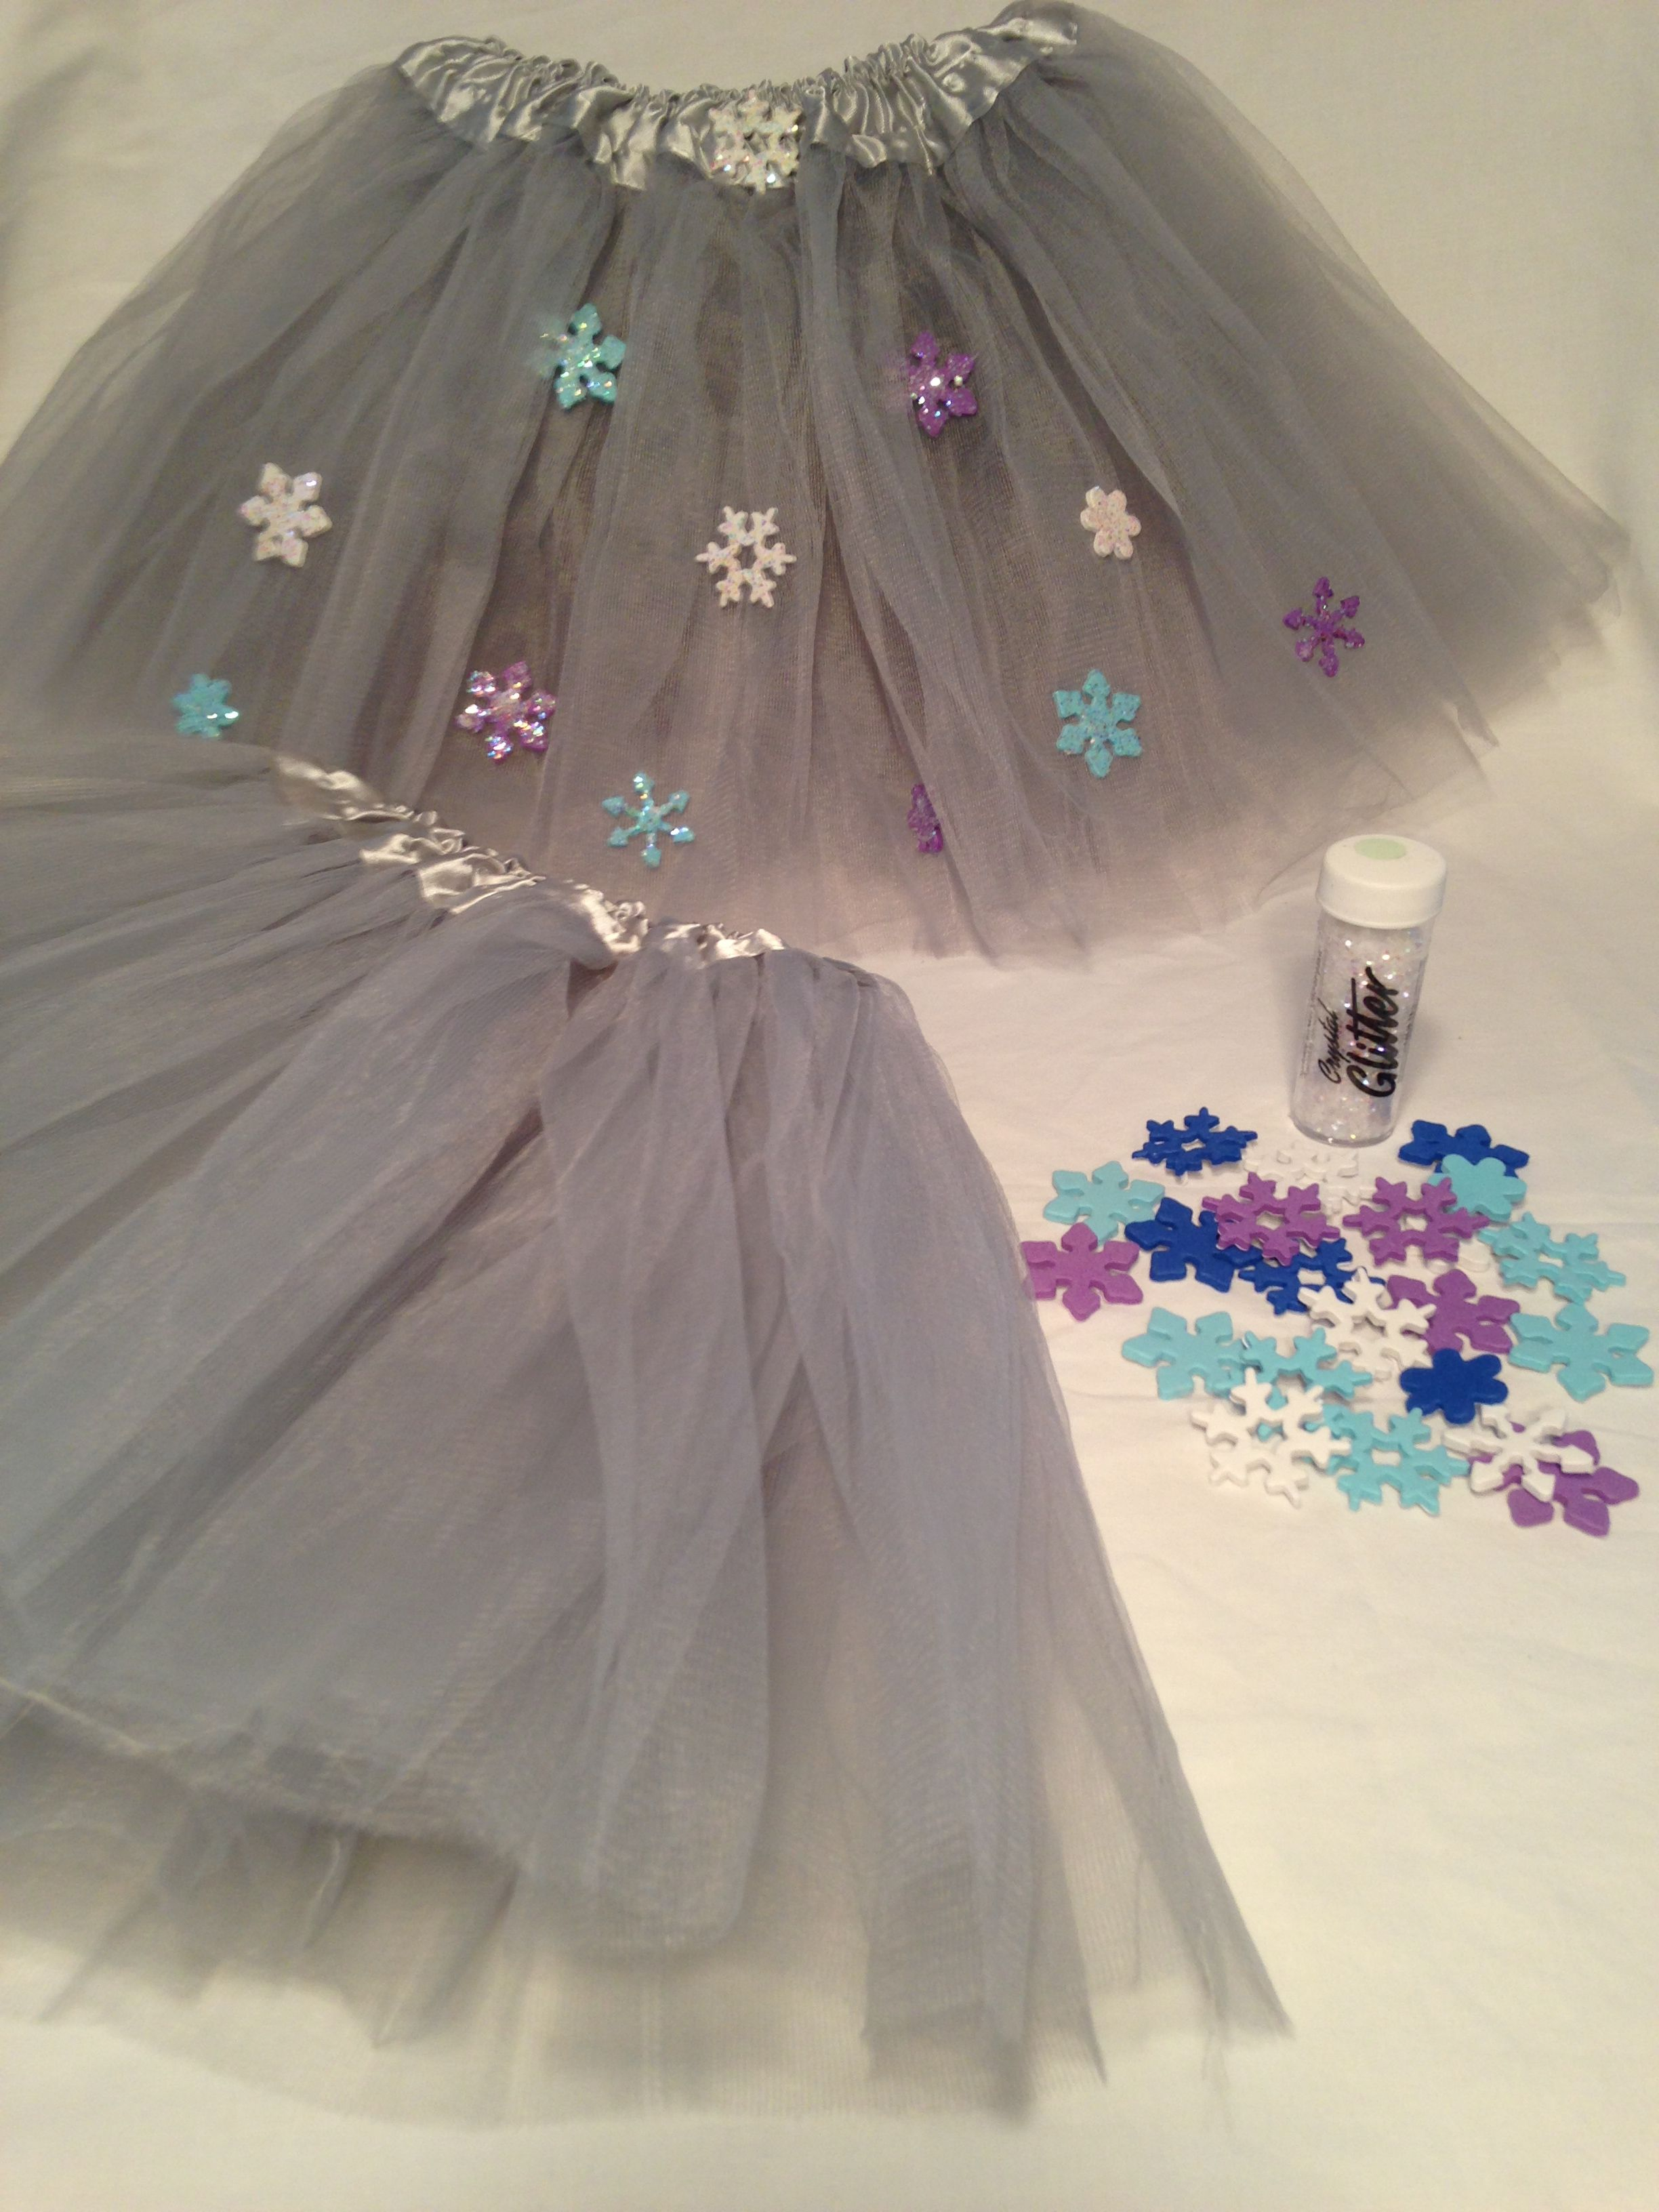 Princess Birthday Party ideas. Frozen Party Craft Ideas. New Frozen Tutu Craft from My Princess Party to Go. http://www.myprincesspartytogo.com/Crafts.html #princessbirthdaypartyideas #frozenpartyideas #frozepartycrafts